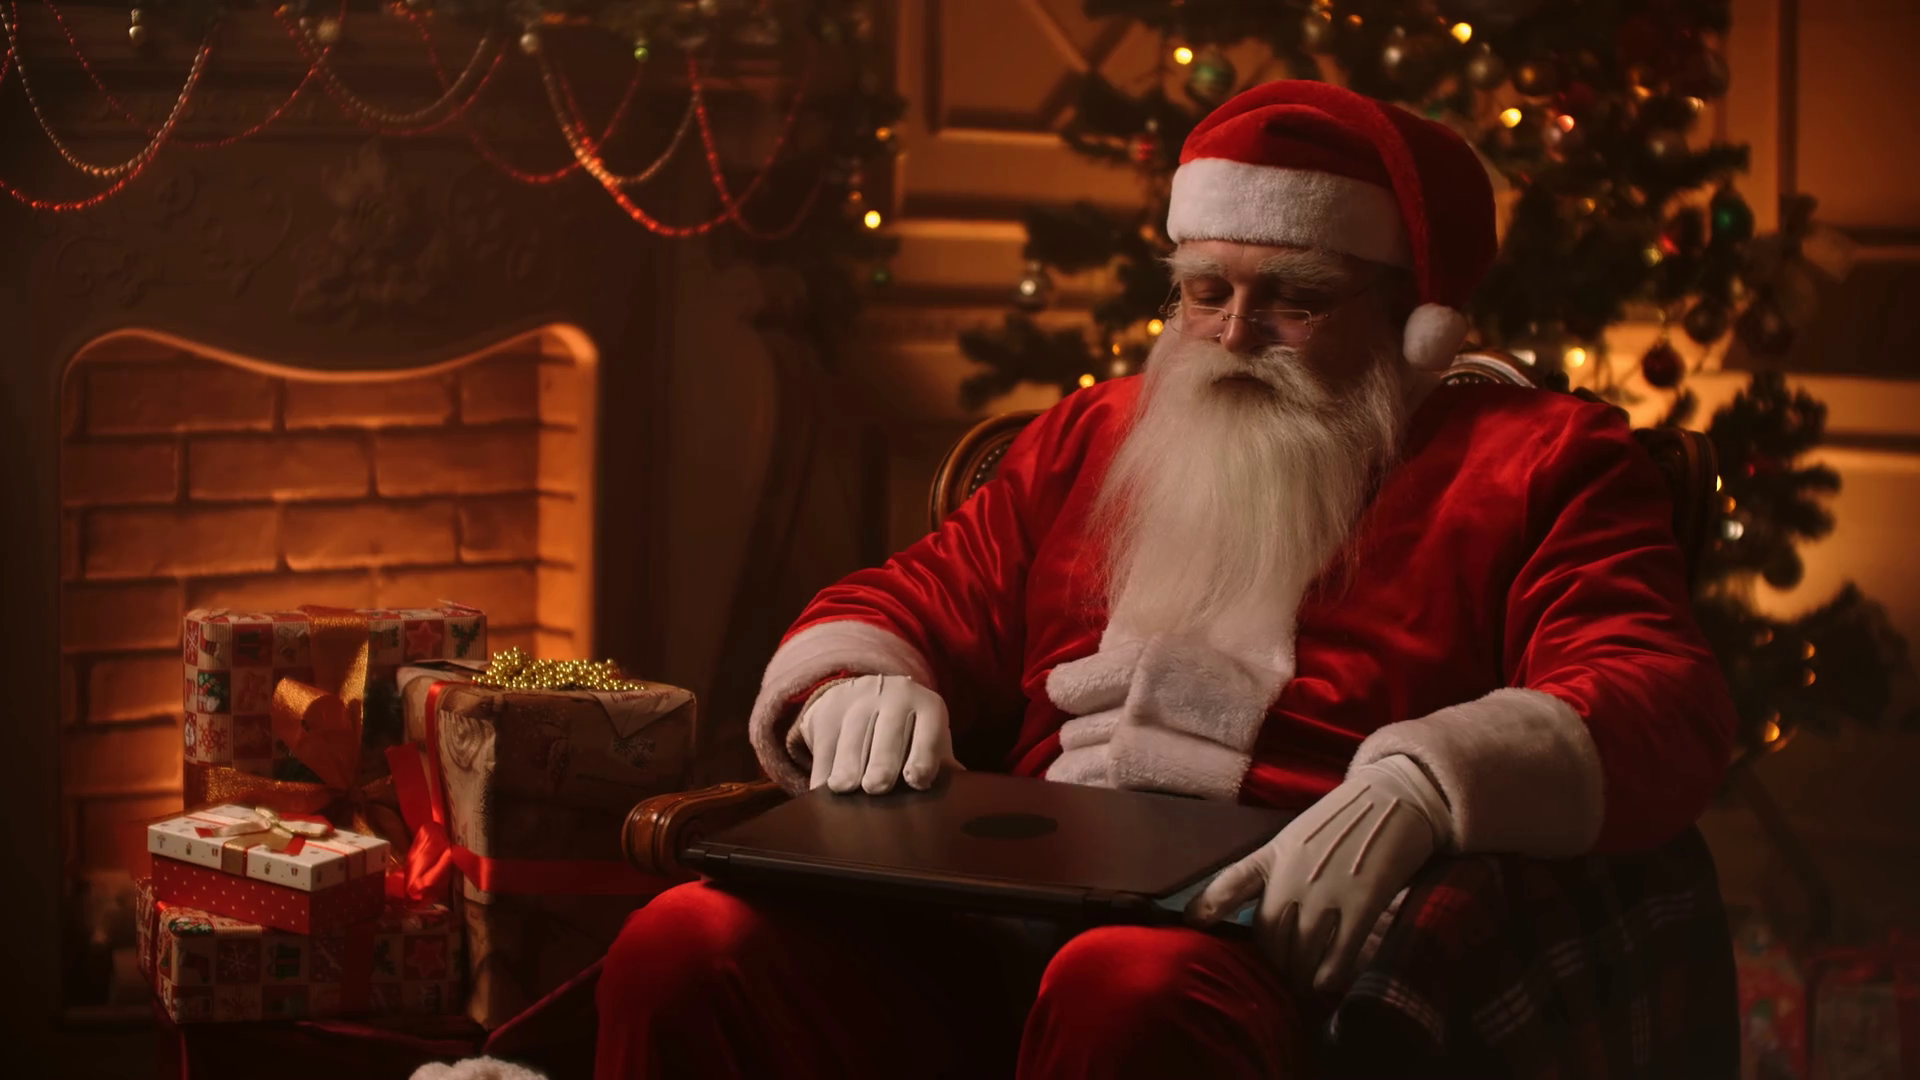 Modern Santa Claus Cheerful Santa Claus Working On Laptop And Smiling While Sitting At His Chair With Fireplace And Christmas Tree In The Background Stock Video Footage Storyblocks